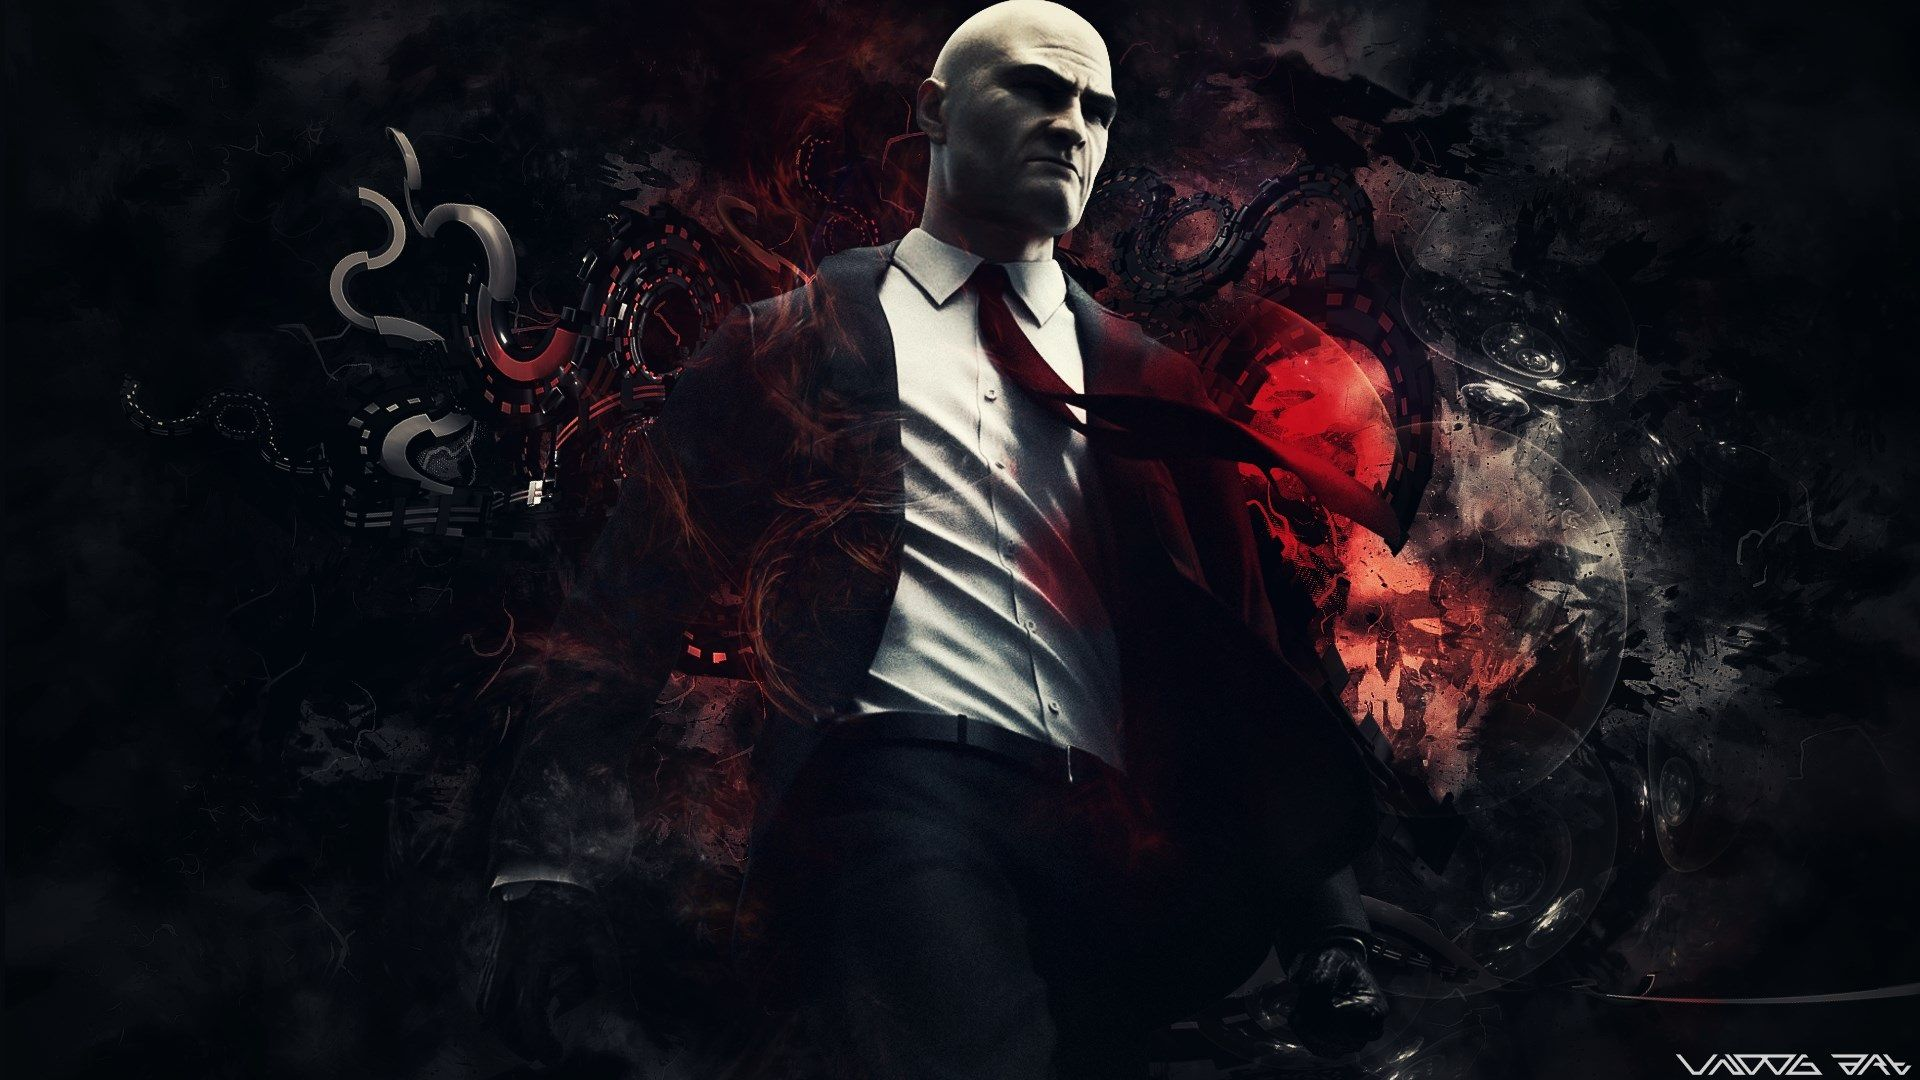 1920x1080 Hitman Desktop Background Hd Wallpaper Background Hd Wallpaper Hd Wallpaper 4k Game Art